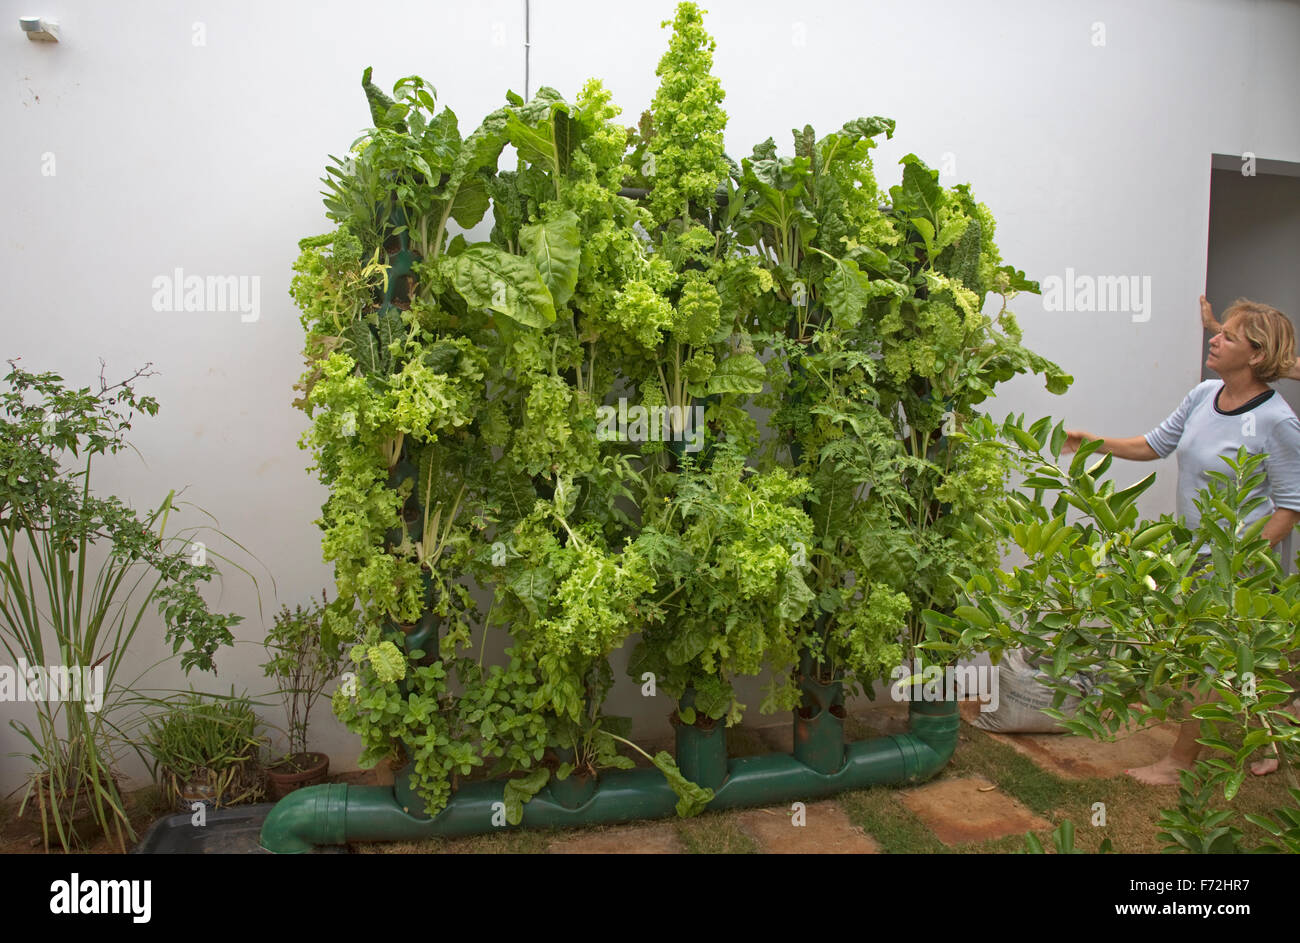 Vertical Vegetable Gardening Using Home Made Aquaponics System Kenya Stock Photo Alamy